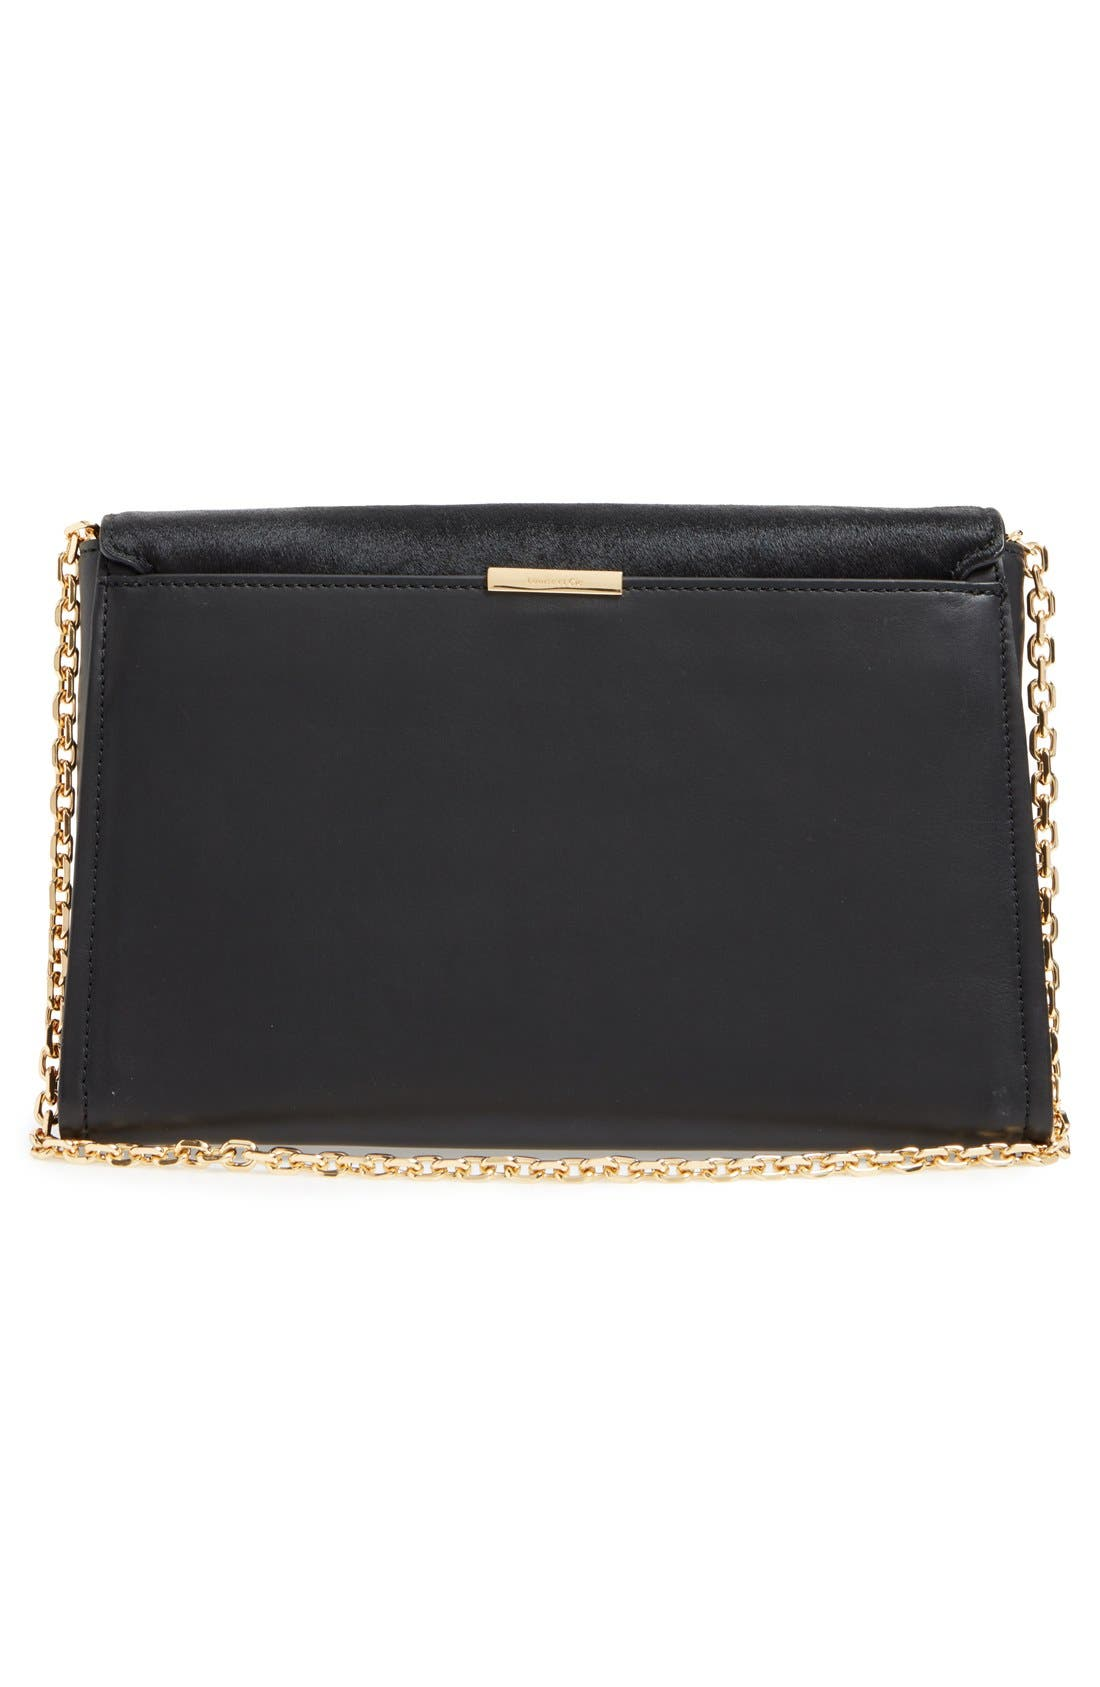 'Towa' Leather Clutch,                             Alternate thumbnail 5, color,                             001